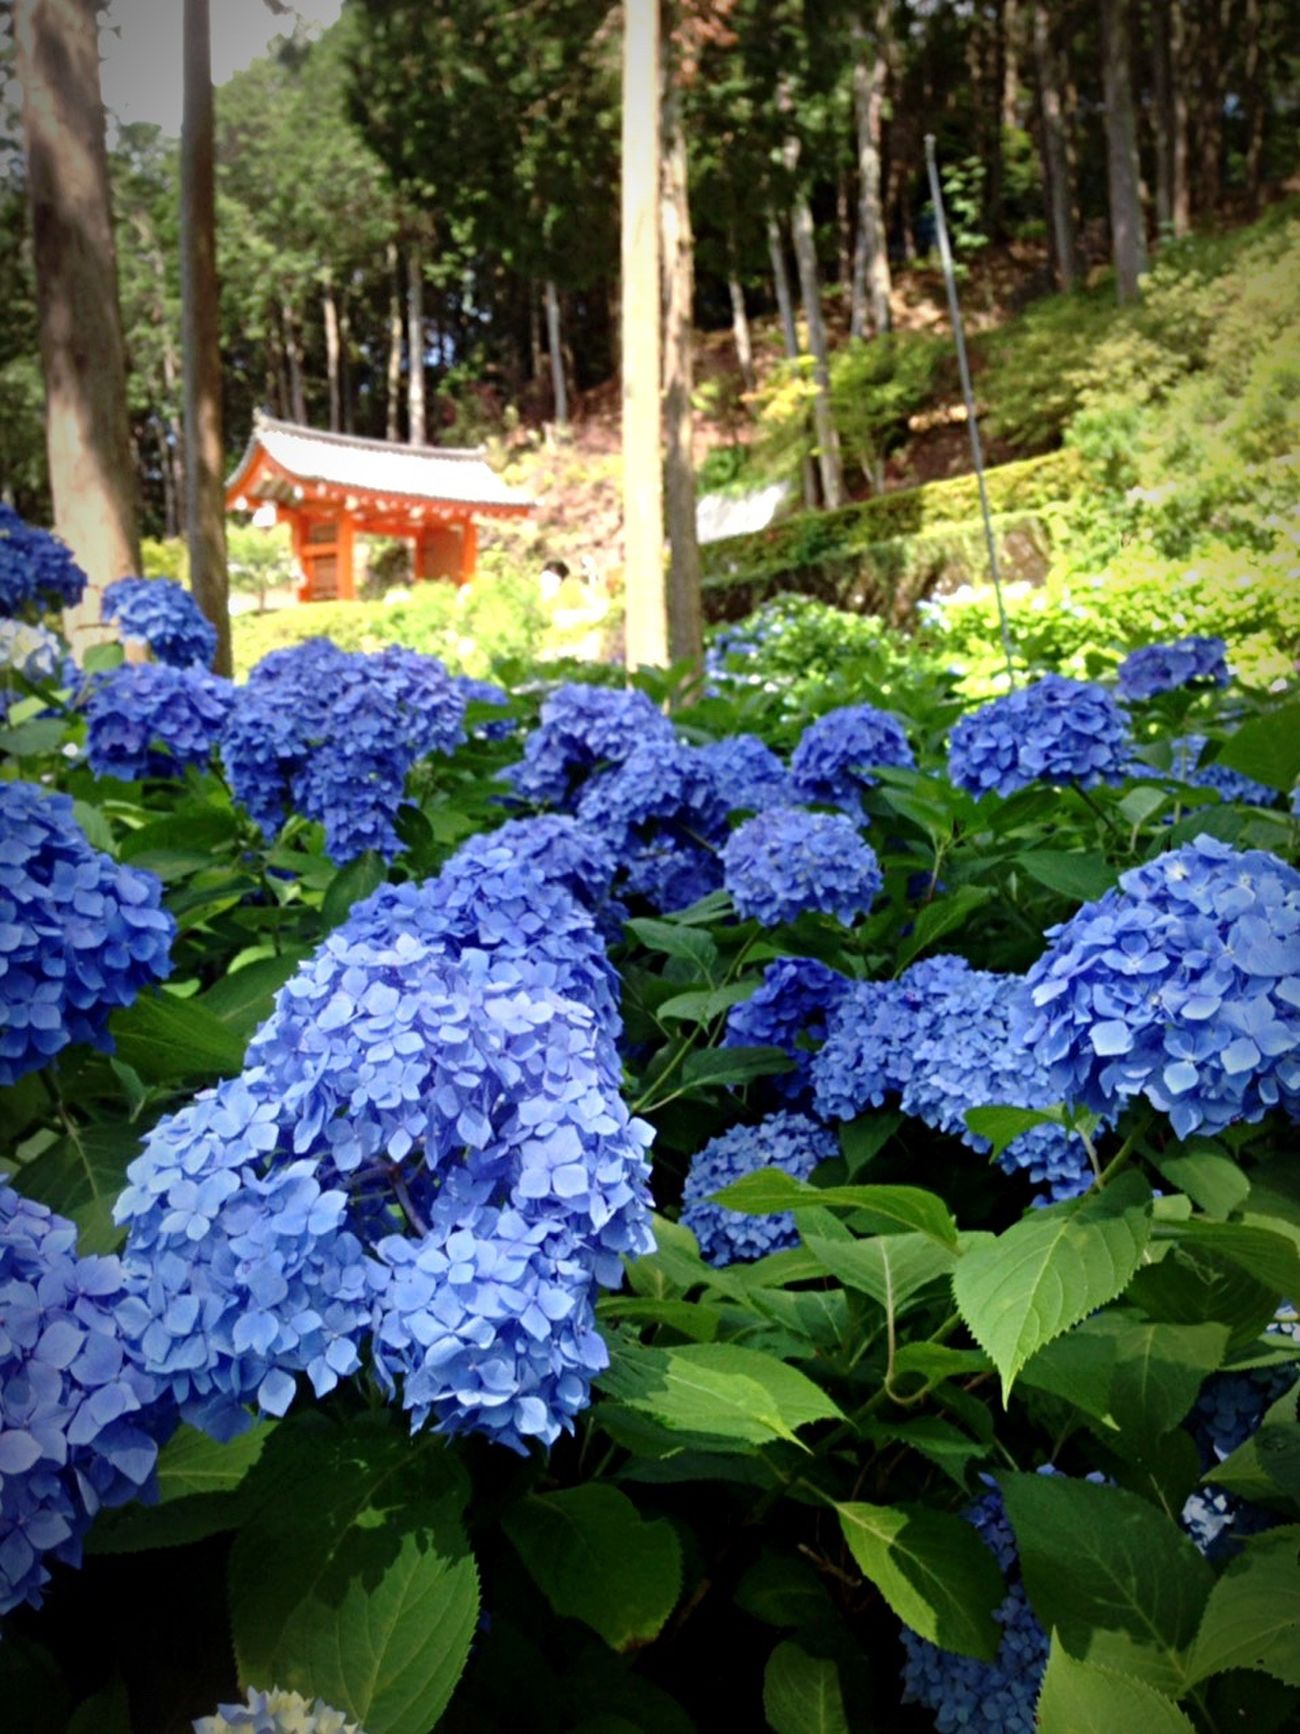 Kyoto Japan Temple Mimurotoji Uji Hydrangea Today Flower 京都 日本 寺 三室戸寺 宇治 紫陽花 今日